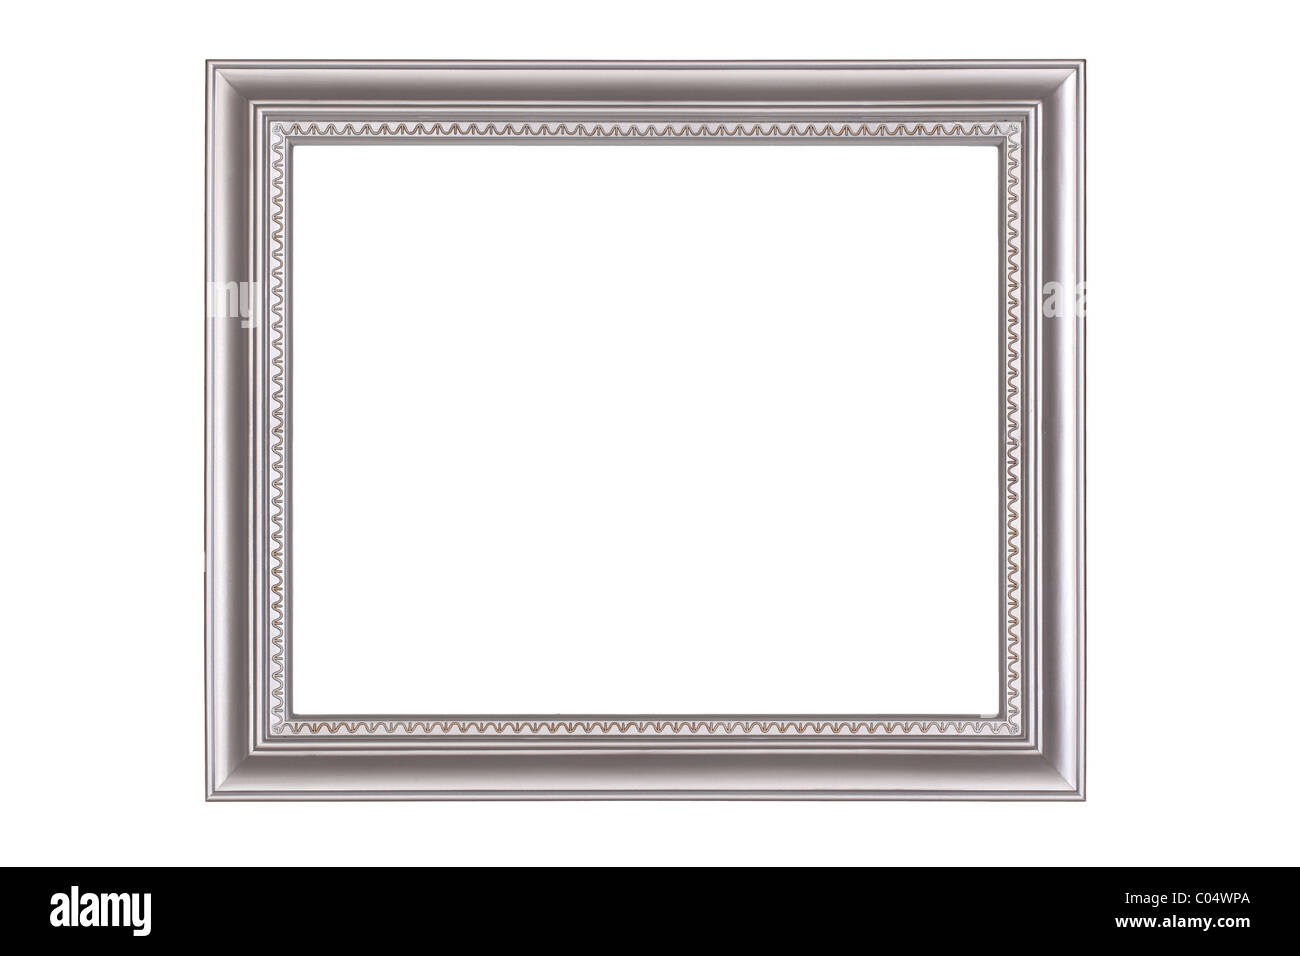 Silver frame isolated on white background - Stock Image